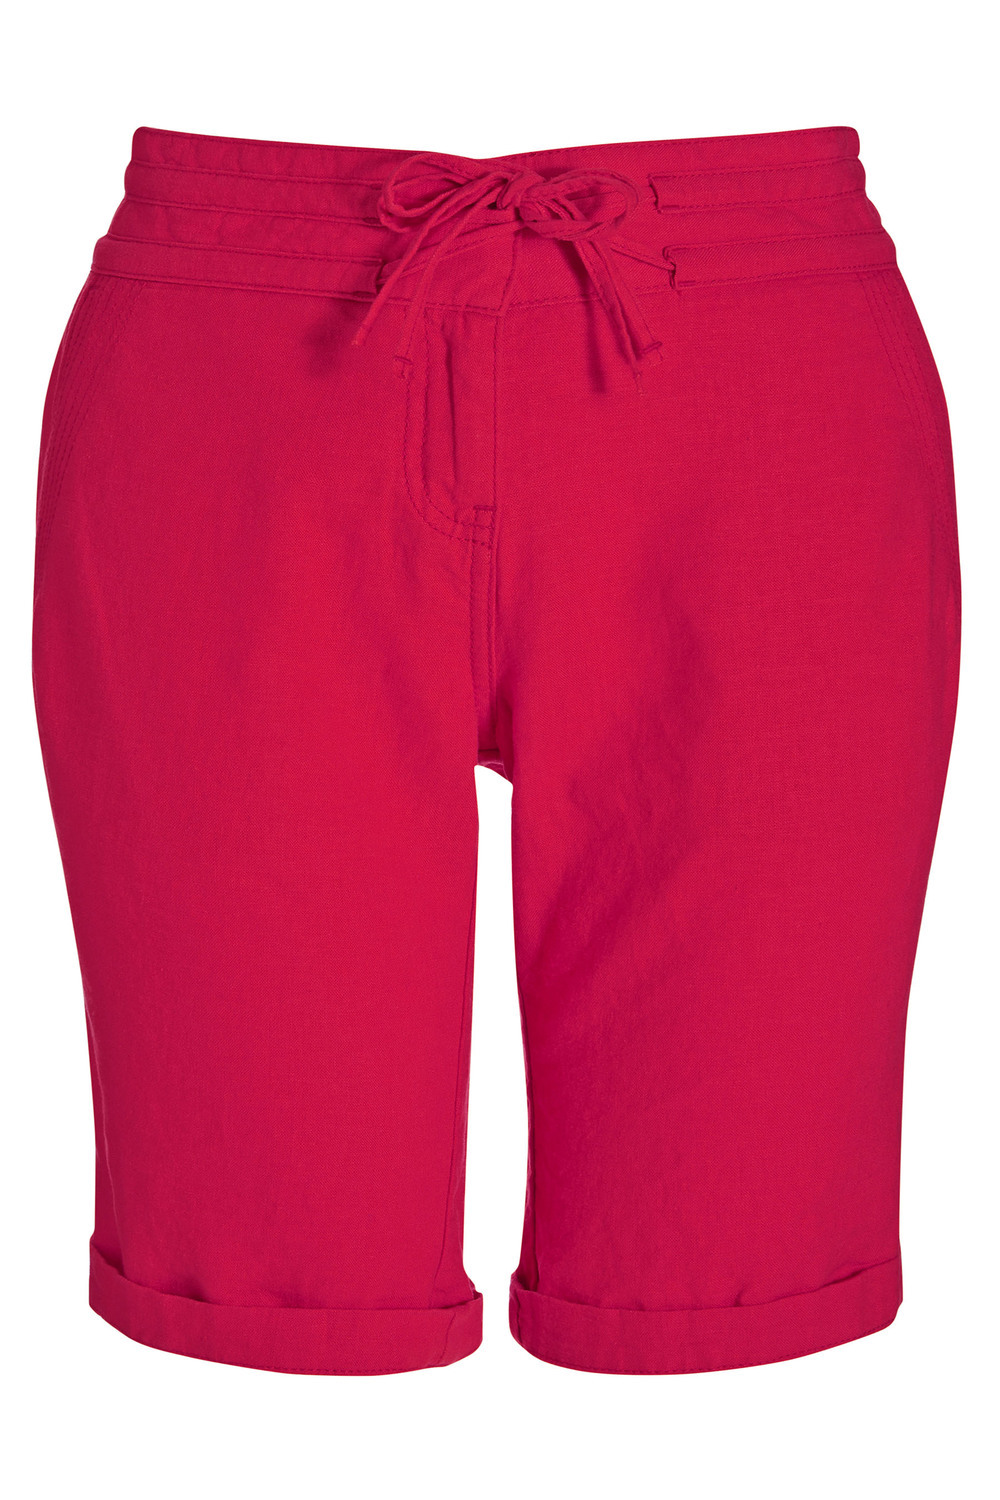 Free shipping BOTH ways on mens linen shorts clothing, from our vast selection of styles. Fast delivery, and 24/7/ real-person service with a smile. Click or call